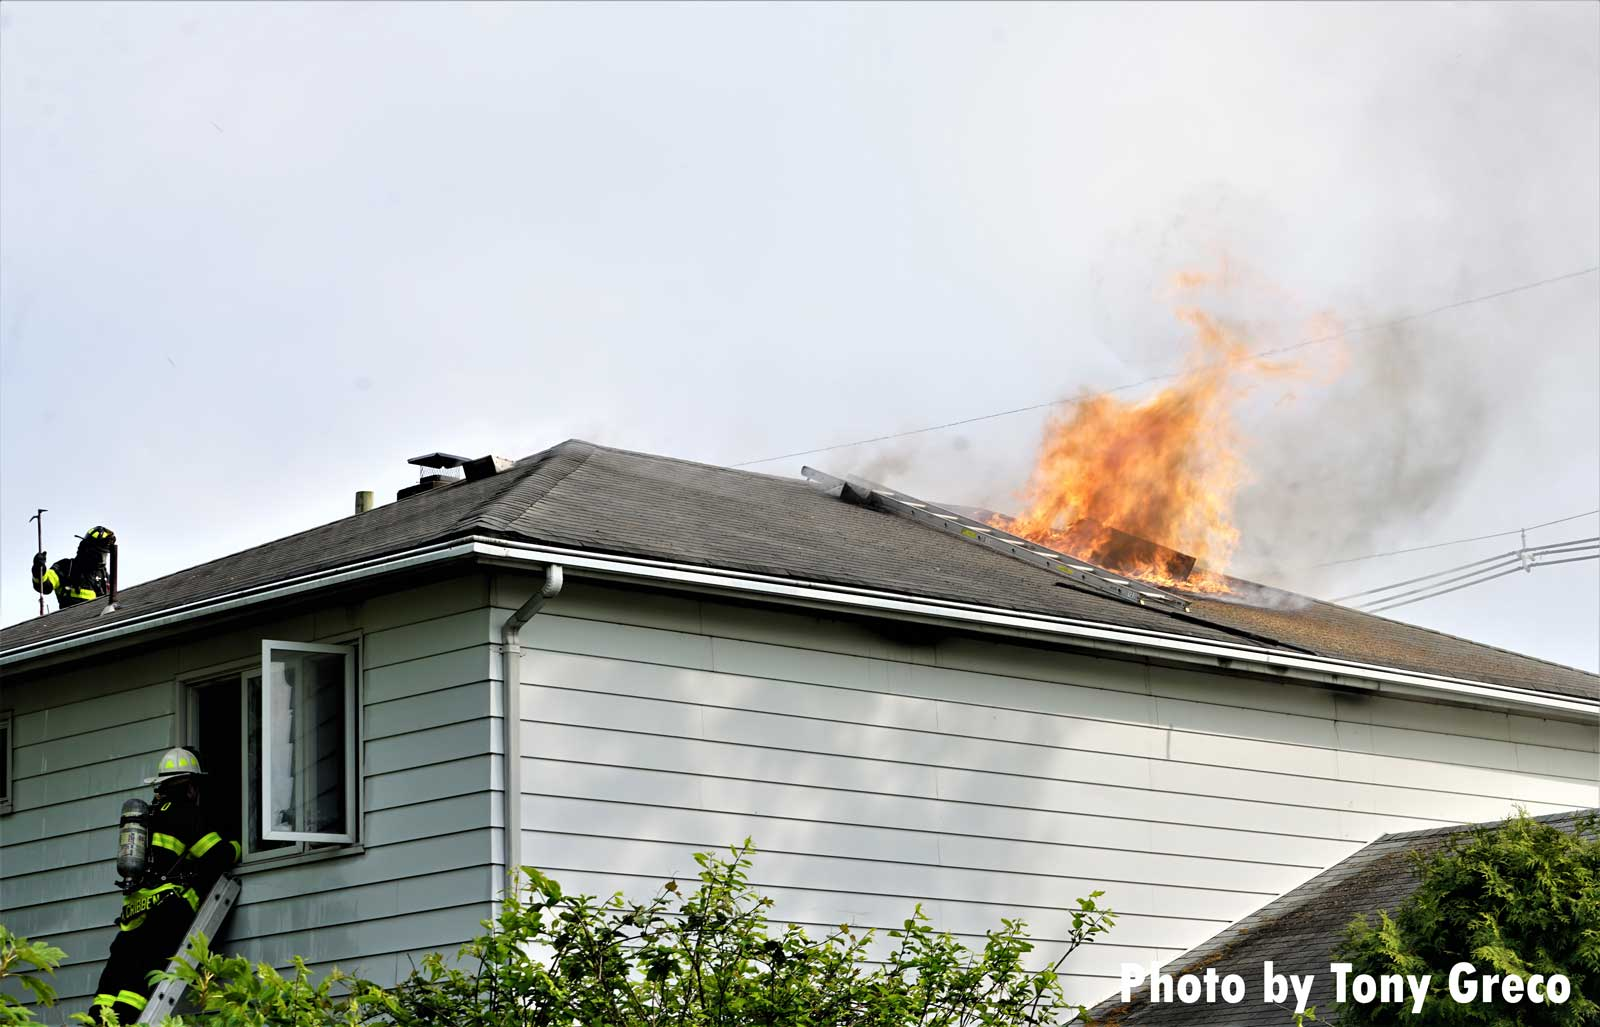 Firefighters operate at a house fire as flames show through the roof